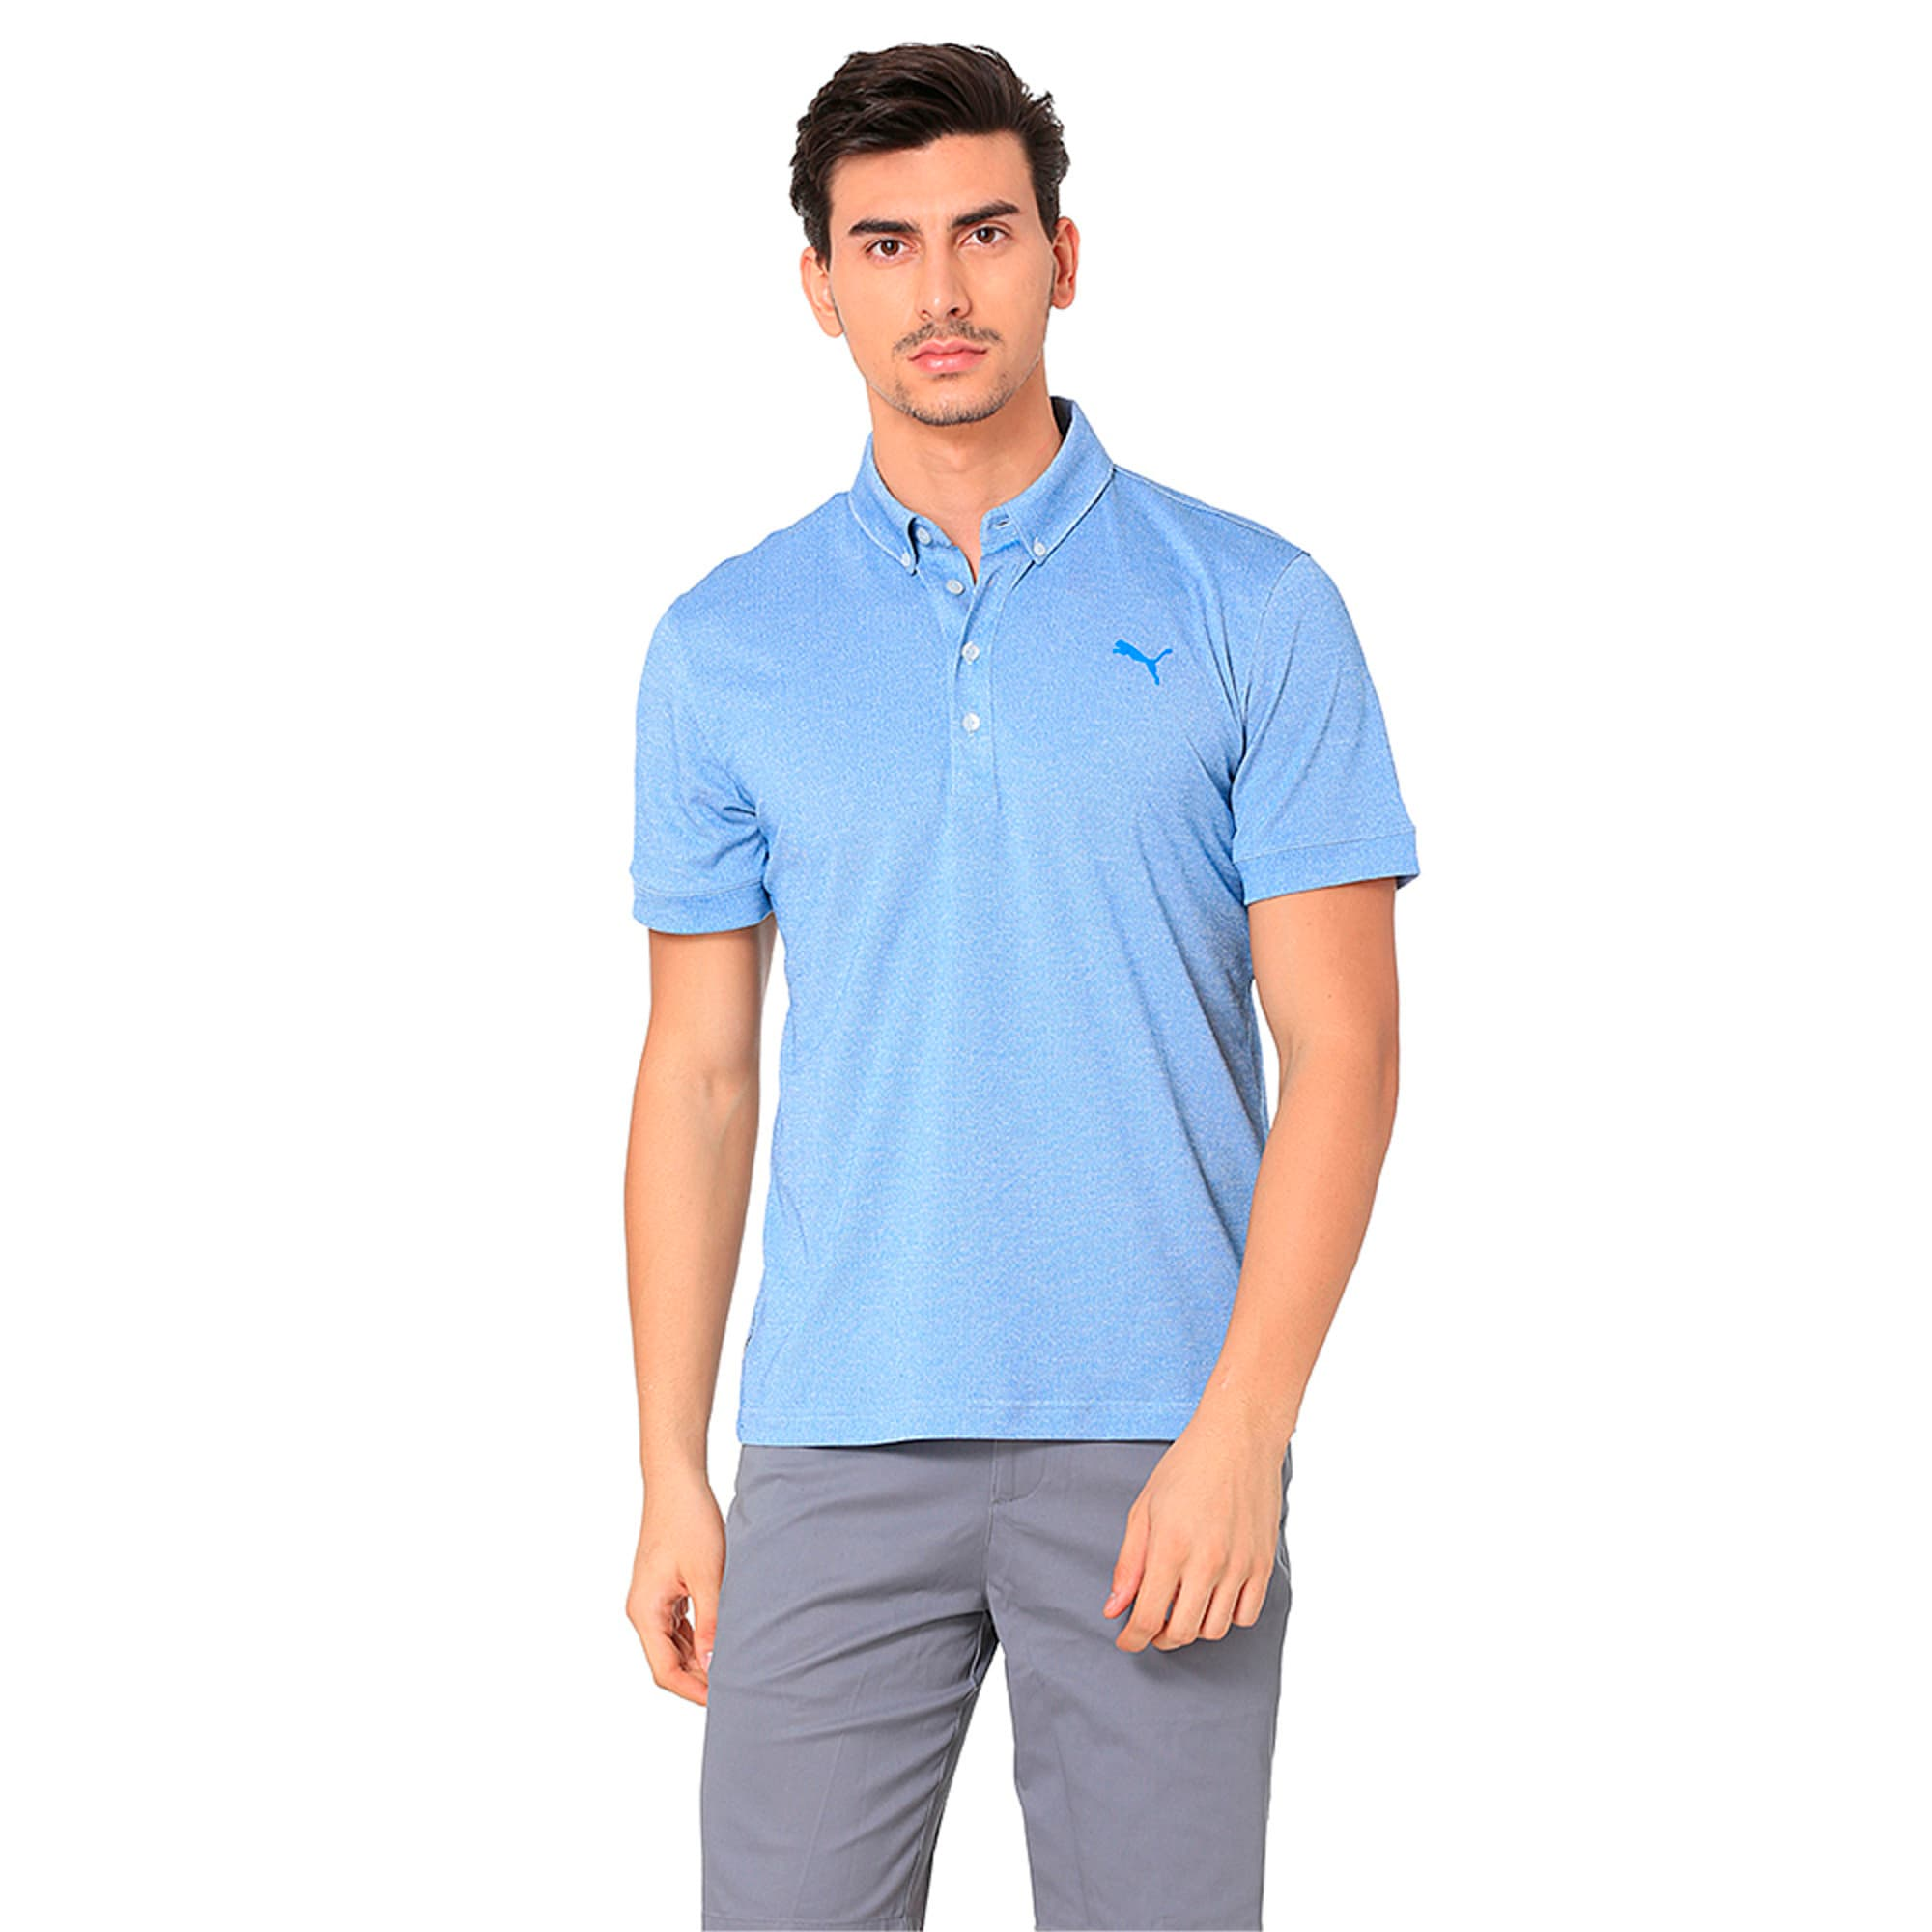 Thumbnail 2 of Golf Men's Tailored Oxford Heather Polo, EBL Heather, medium-IND